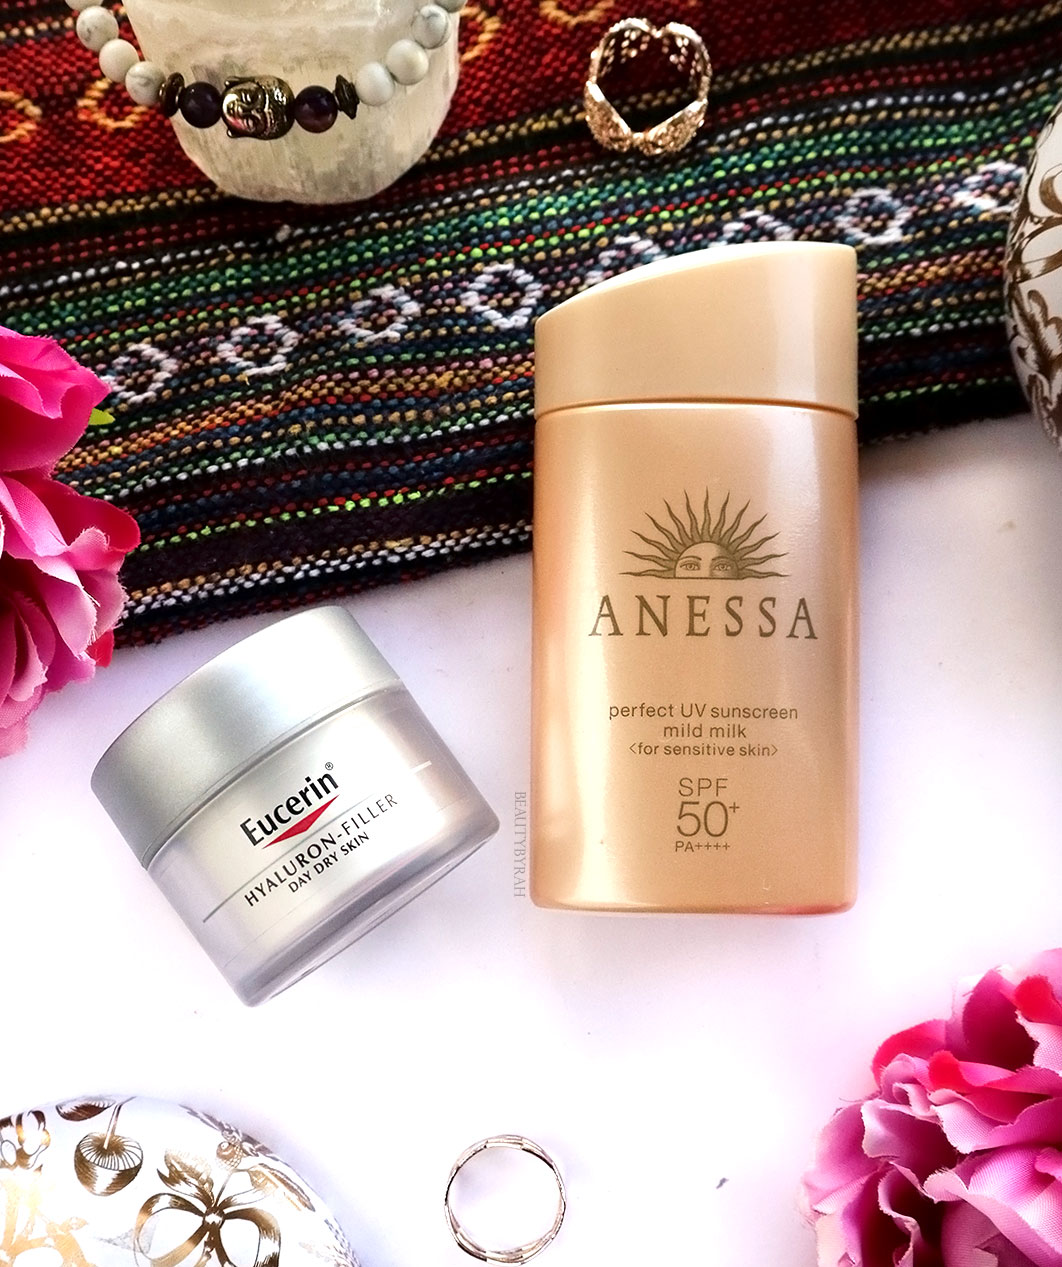 Anessa perfect UV sunscreen mild milk review